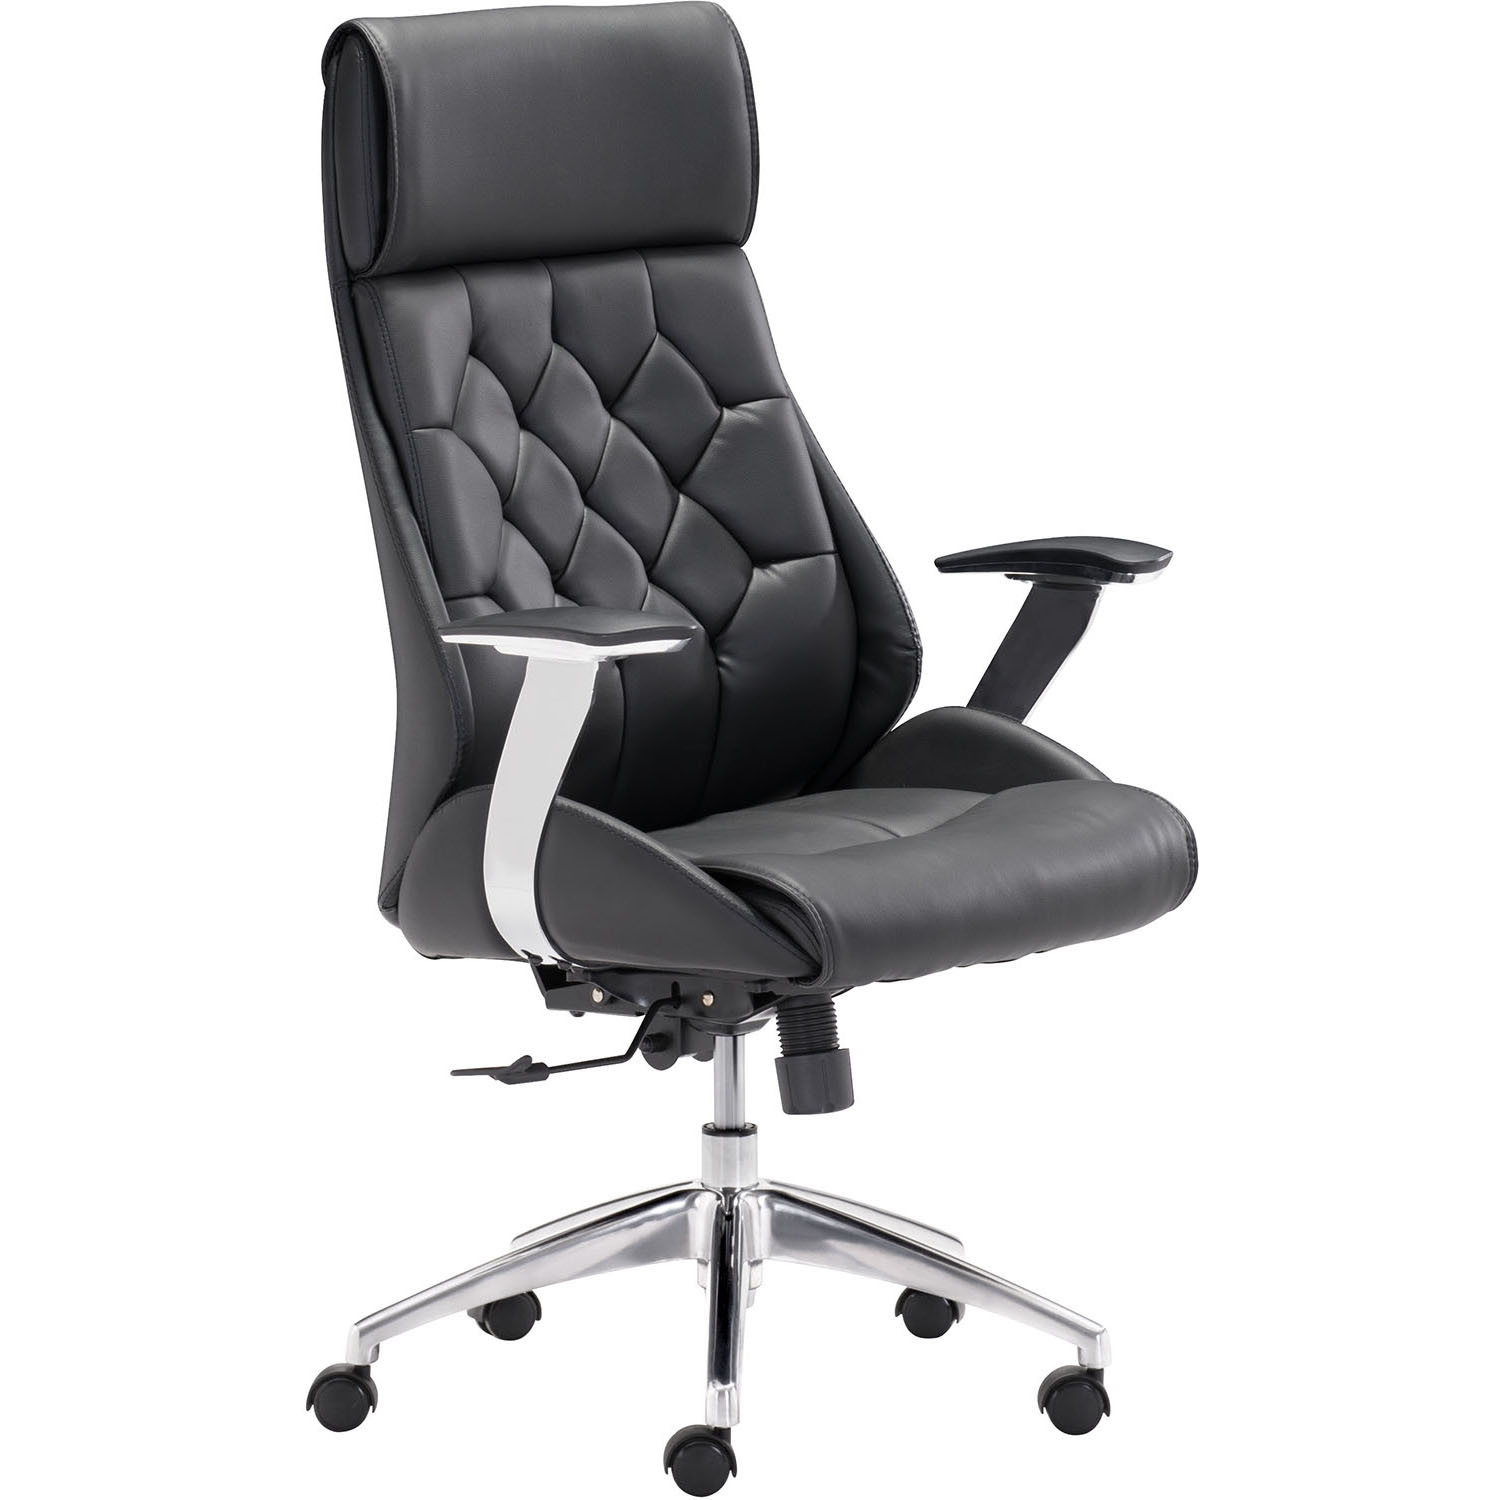 Modern Boutique Adjustable Rolling Office Armchair 205890, 205891